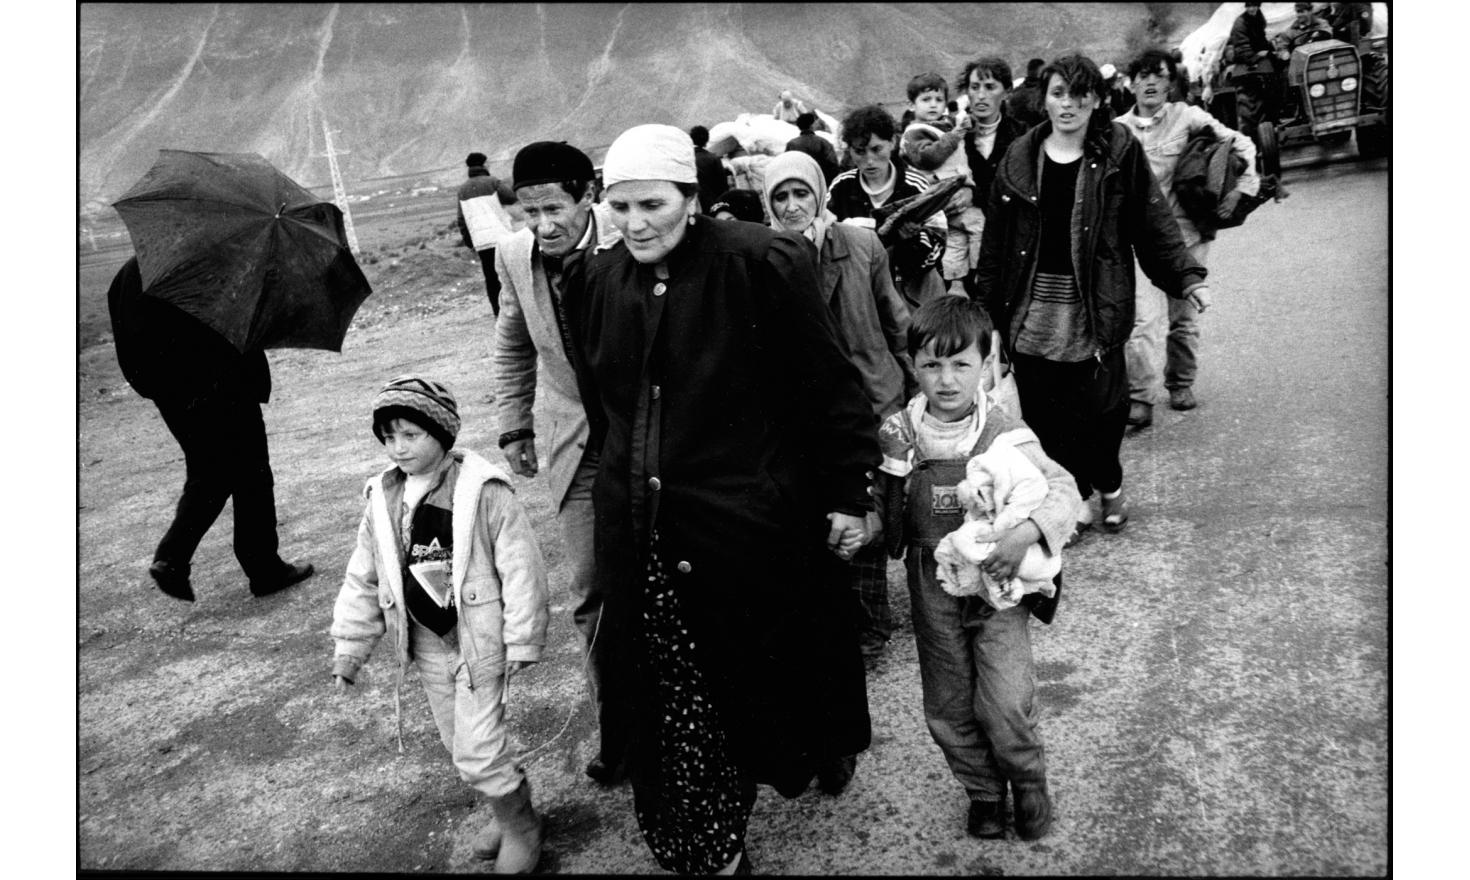 Kosovar refugees arriving by foot at Kukes, Albania. 04-1999